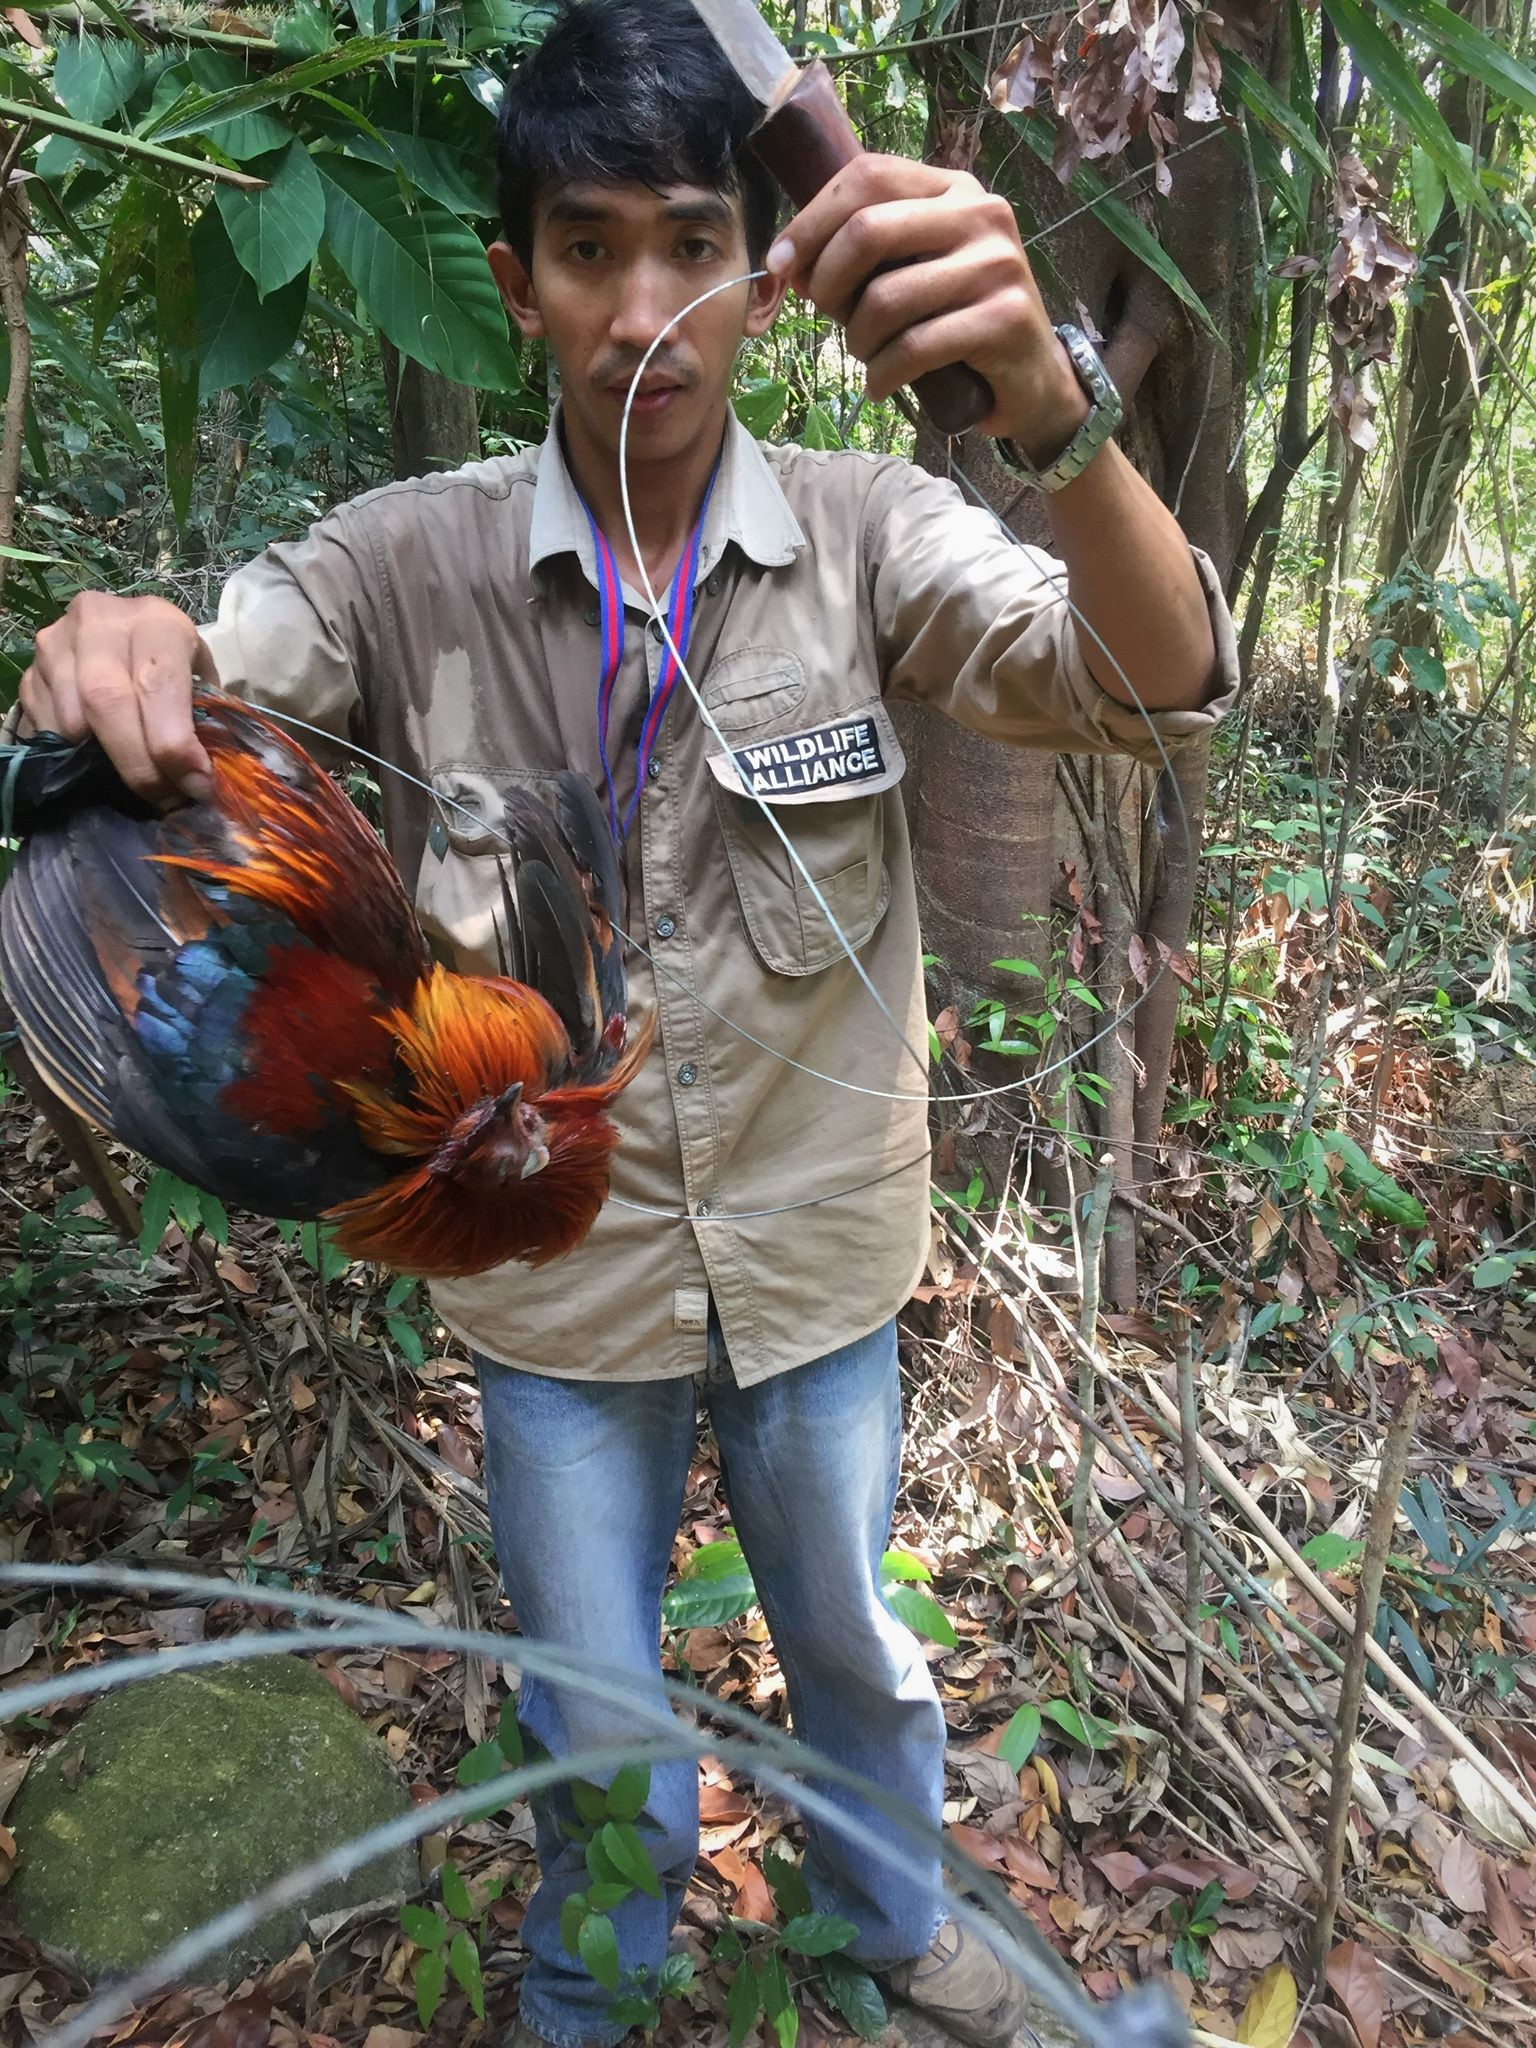 ban snares Call for ban of snares – Dhole caught in snares graphic content wild chicken trapped in snares Wildlife Alliance